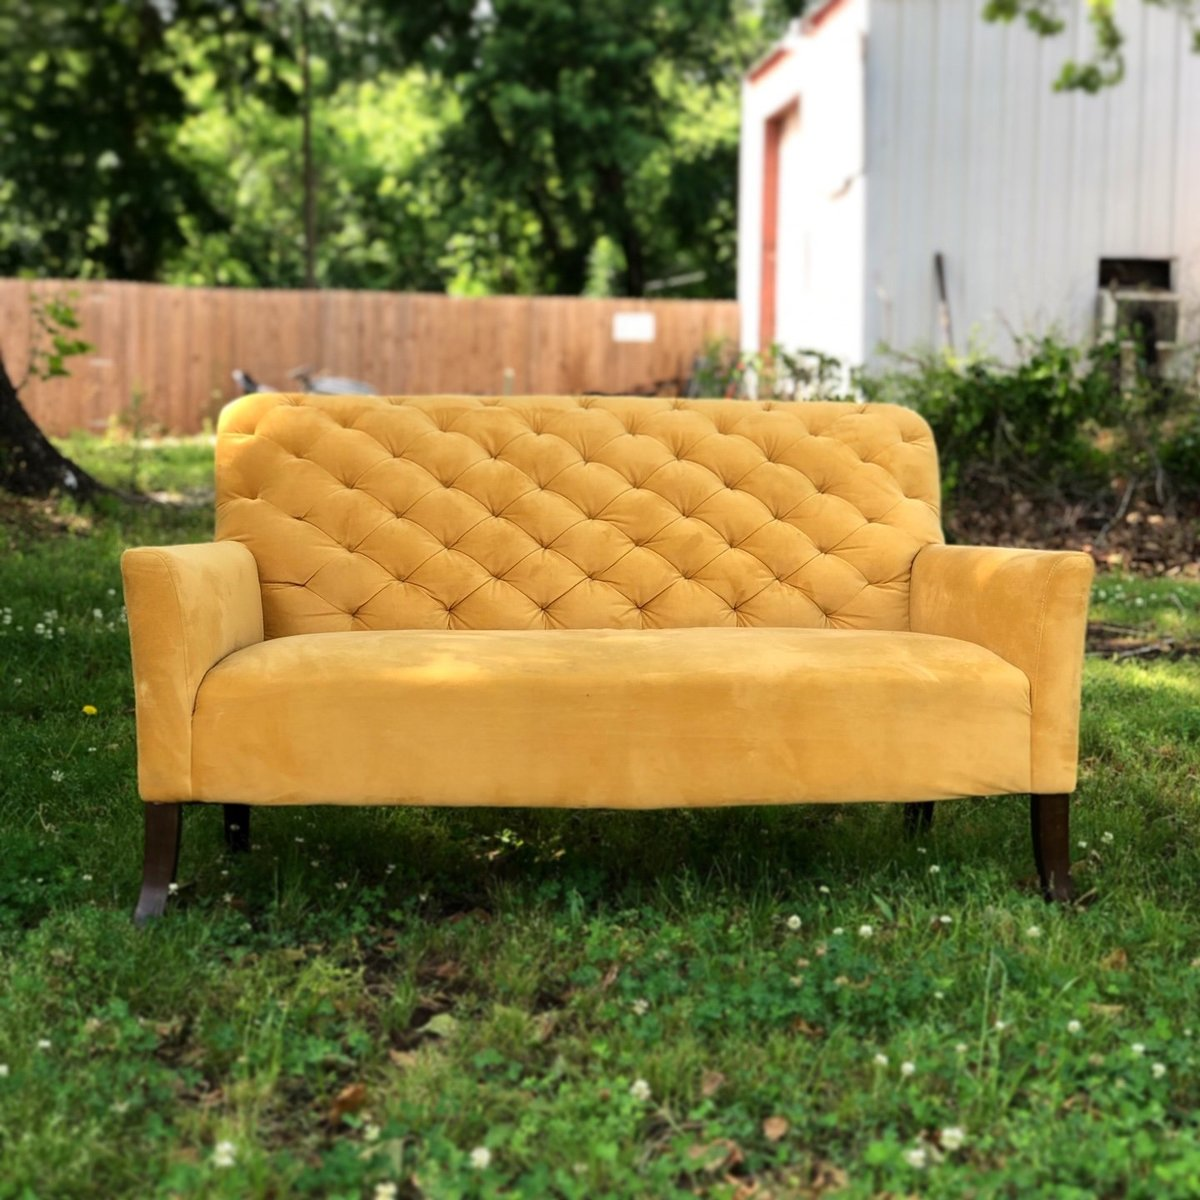 golden tufted loveseat